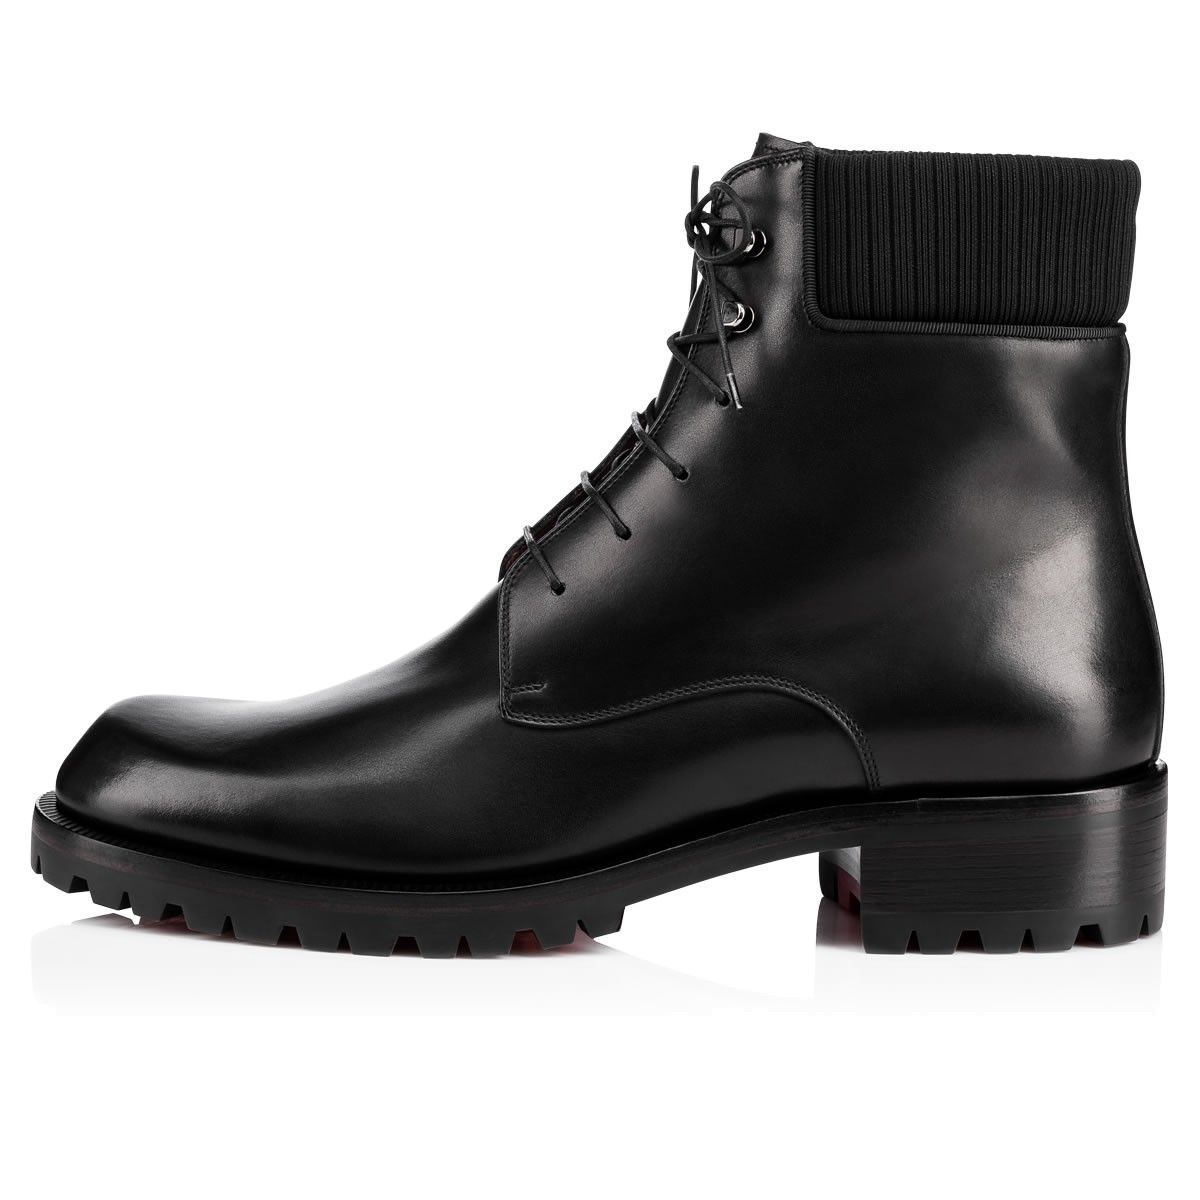 Store Sale Online Discount Purchase Mens Trapman Leather Boots Christian Louboutin Clearance Discount Discounts Online Cheap Authentic Outlet IgyC5H